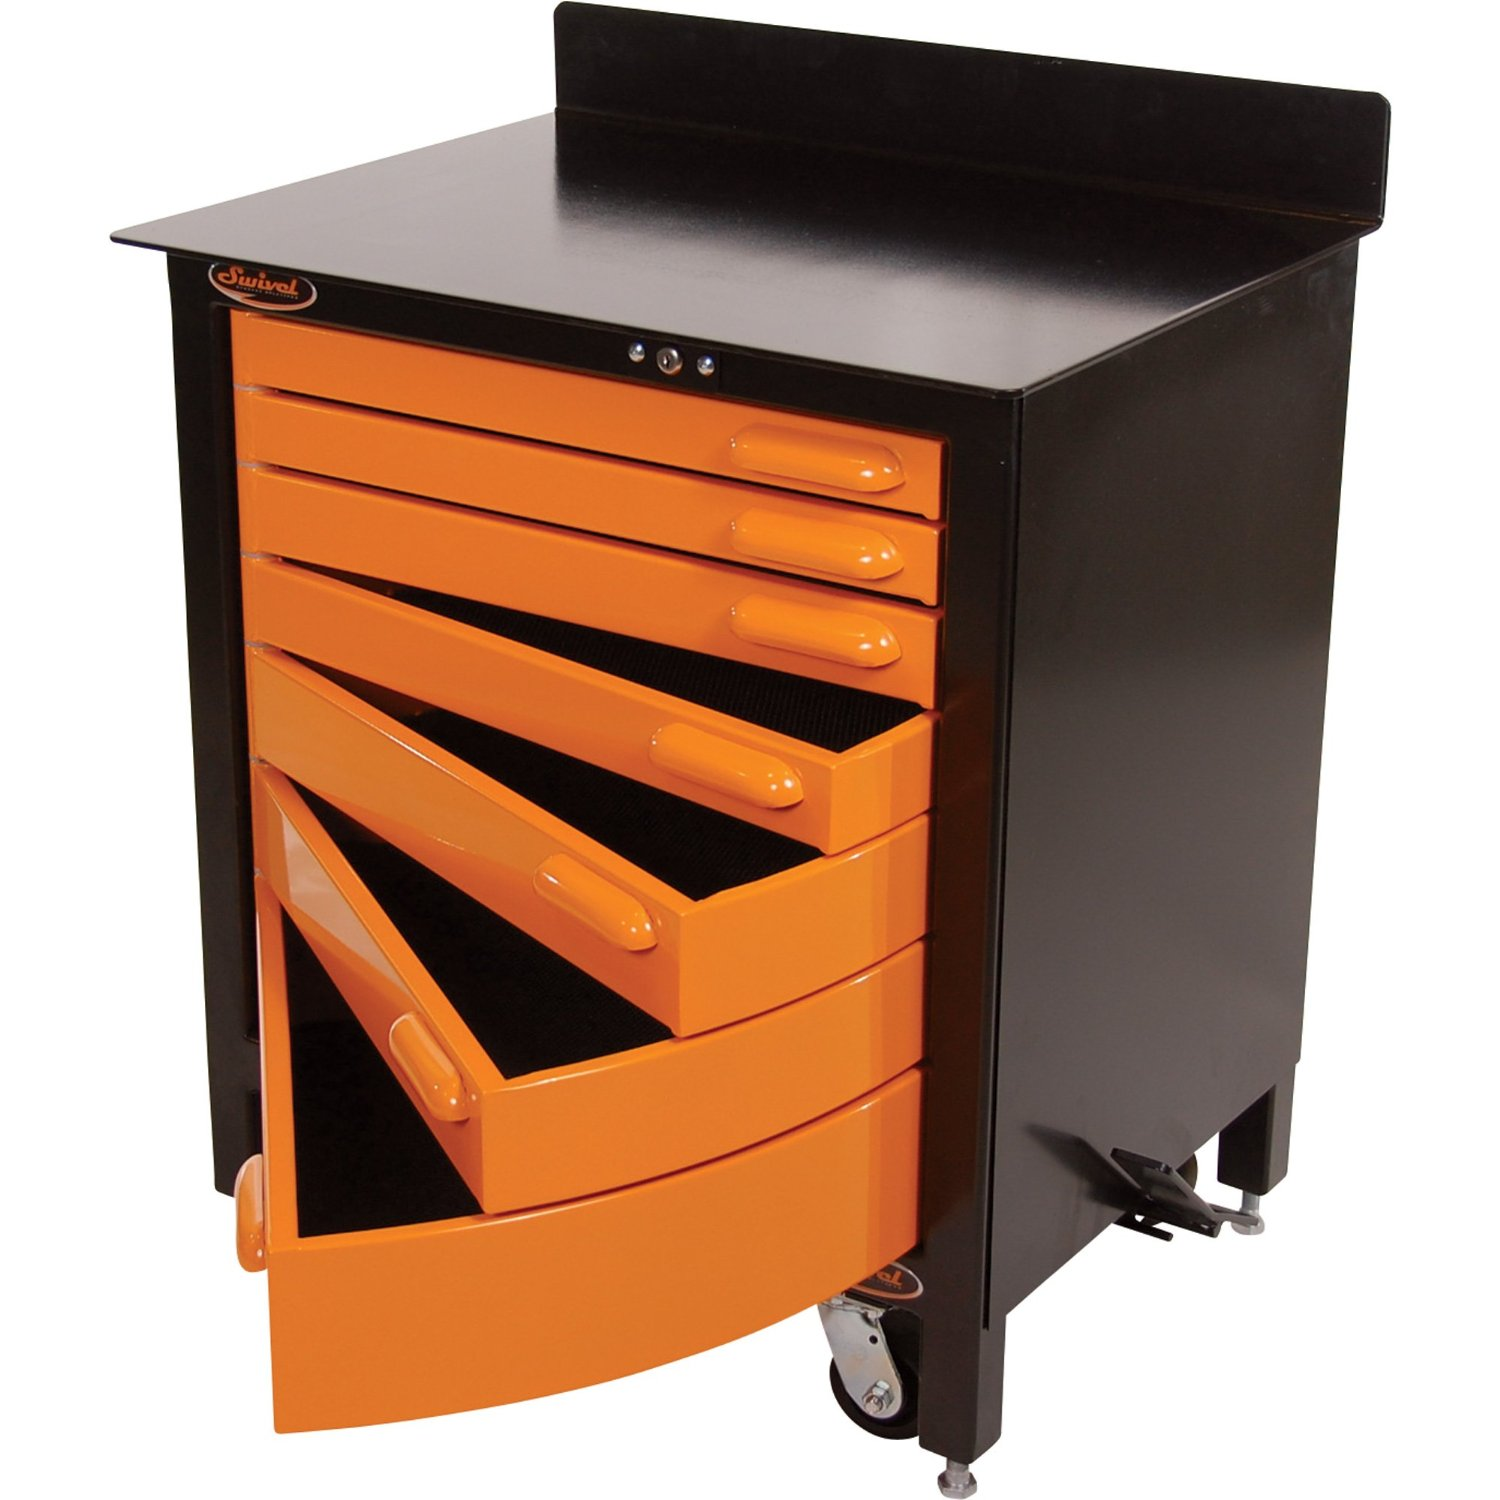 Swivel Storage Solutions Swivel Pro 30 Workbench - Tool Craze